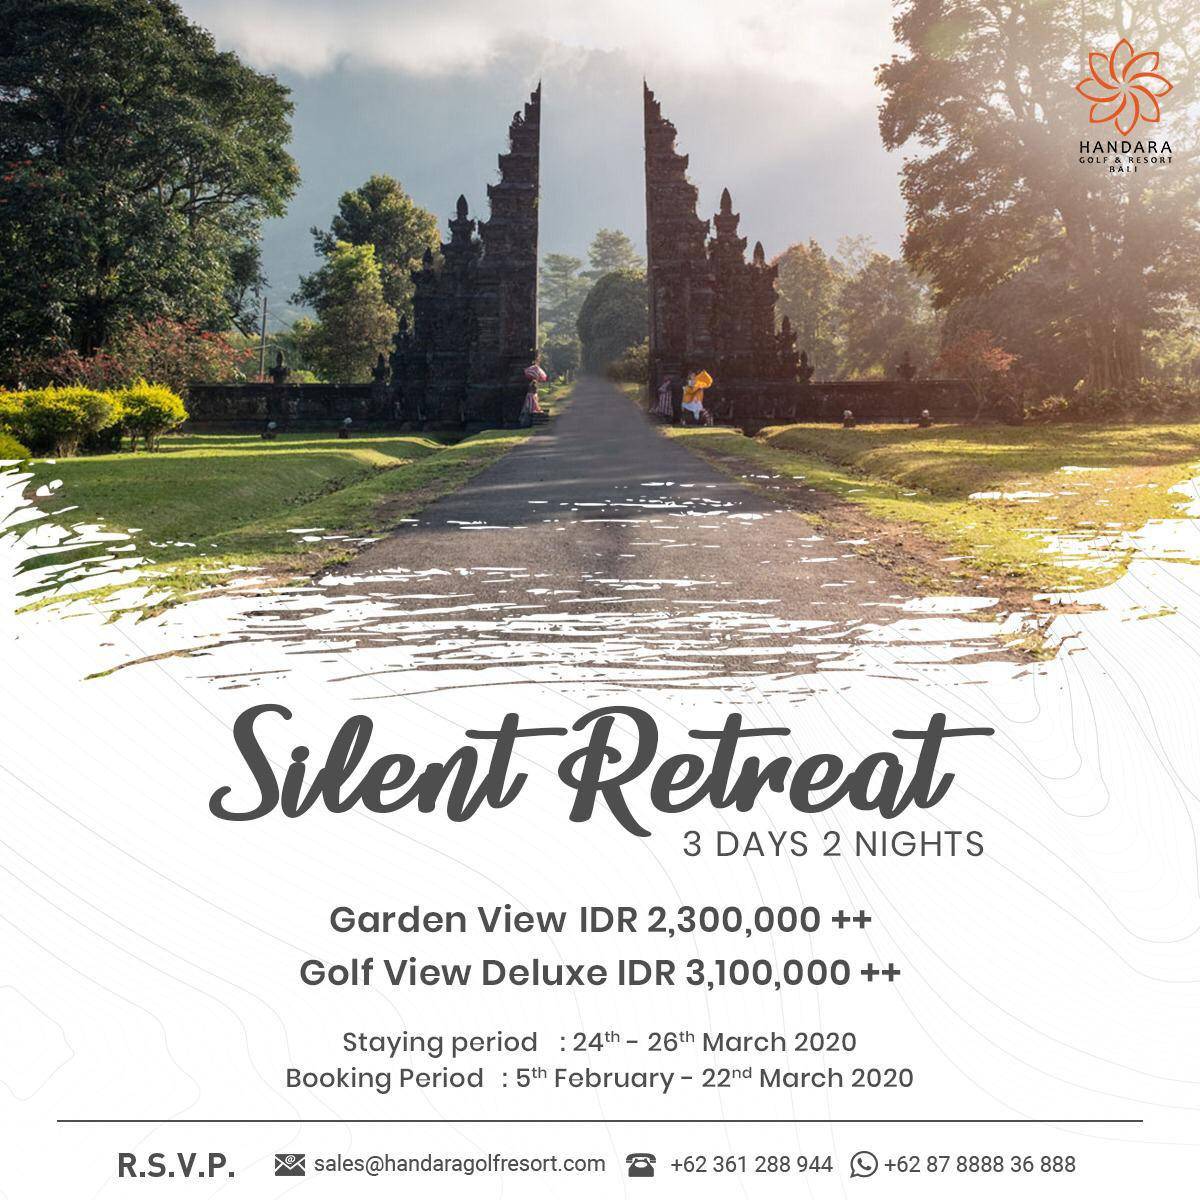 http://highend-traveller.com/experience-the-tranquility-of-nyepi-balinese-day-of-silence-at-handara-golf-resort-bali-%e2%81%a0-%e2%81%a0/